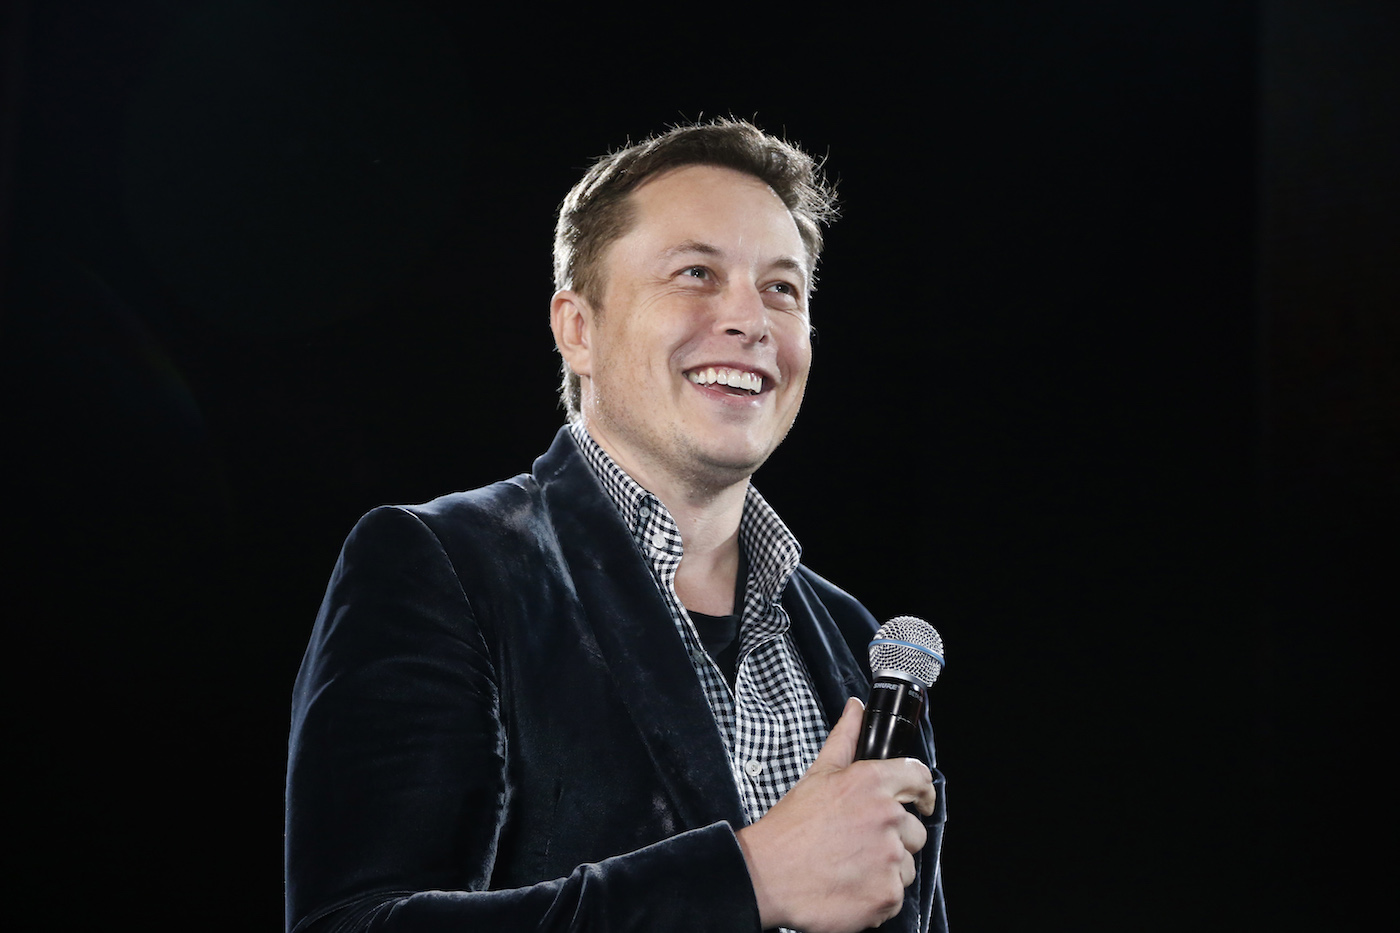 Tesla Motors Inc CEO Elon Musk unveils a new all-wheel-drive version of the Model S car in Hawthorne, California